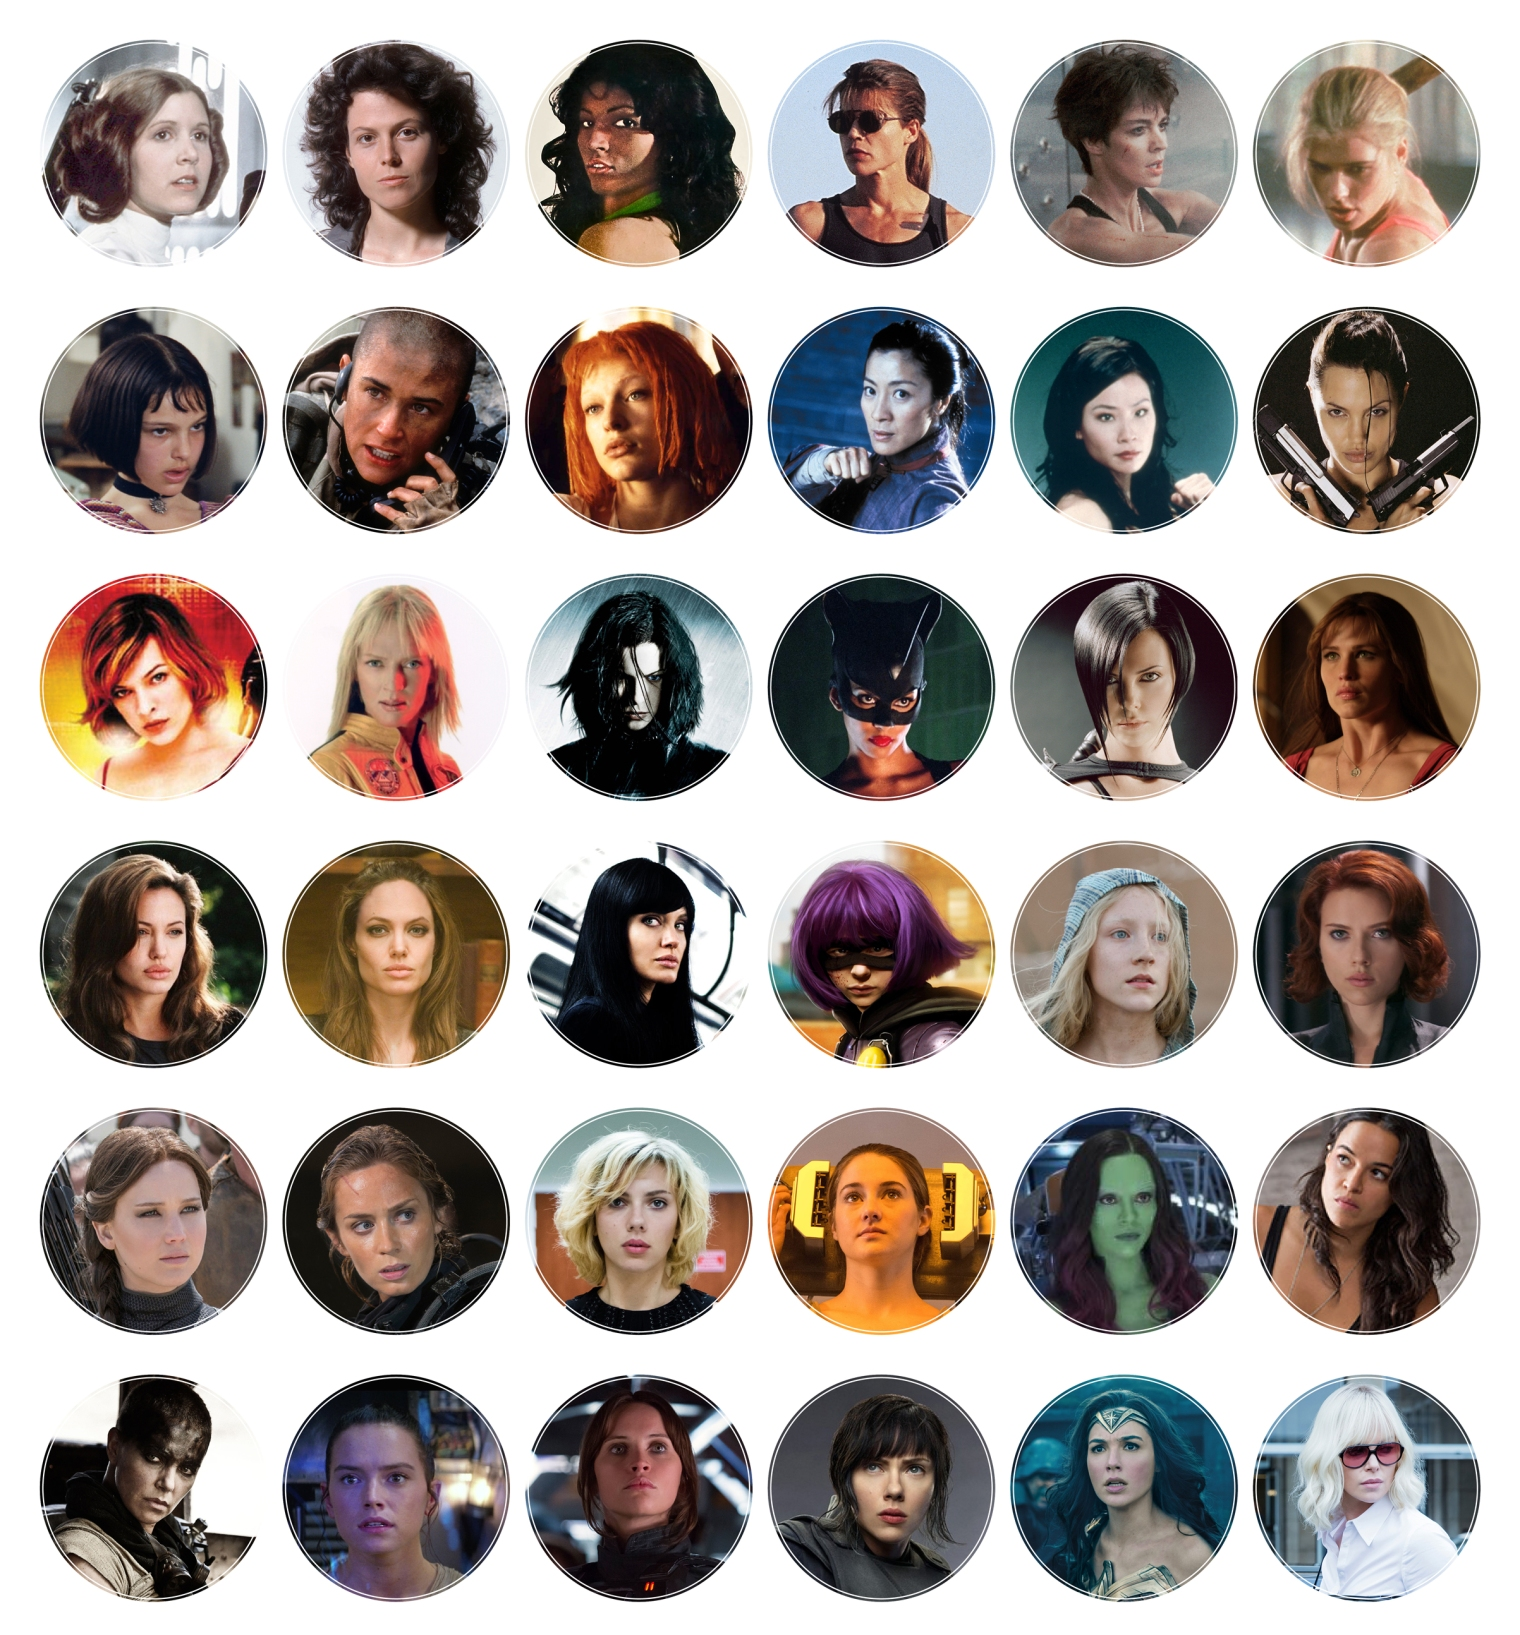 Evolution Of The Female Action Hero Photos